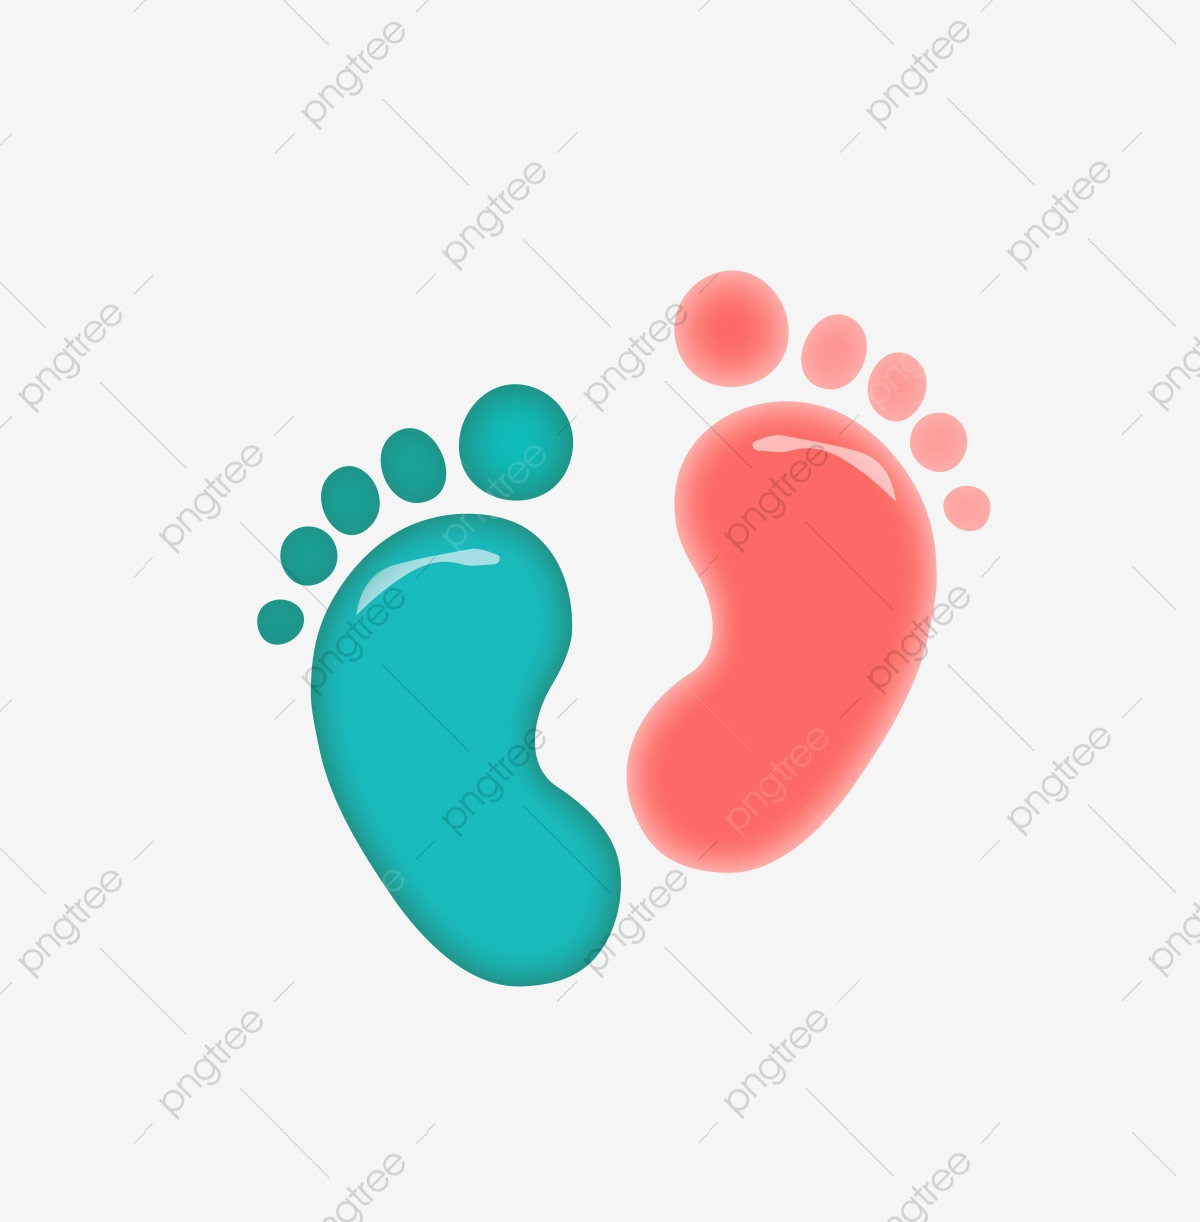 vector illustration colorful little feet vector illustration footprint color png and vector with transparent background for free download https pngtree com freepng vector illustration colorful little feet 5469629 html